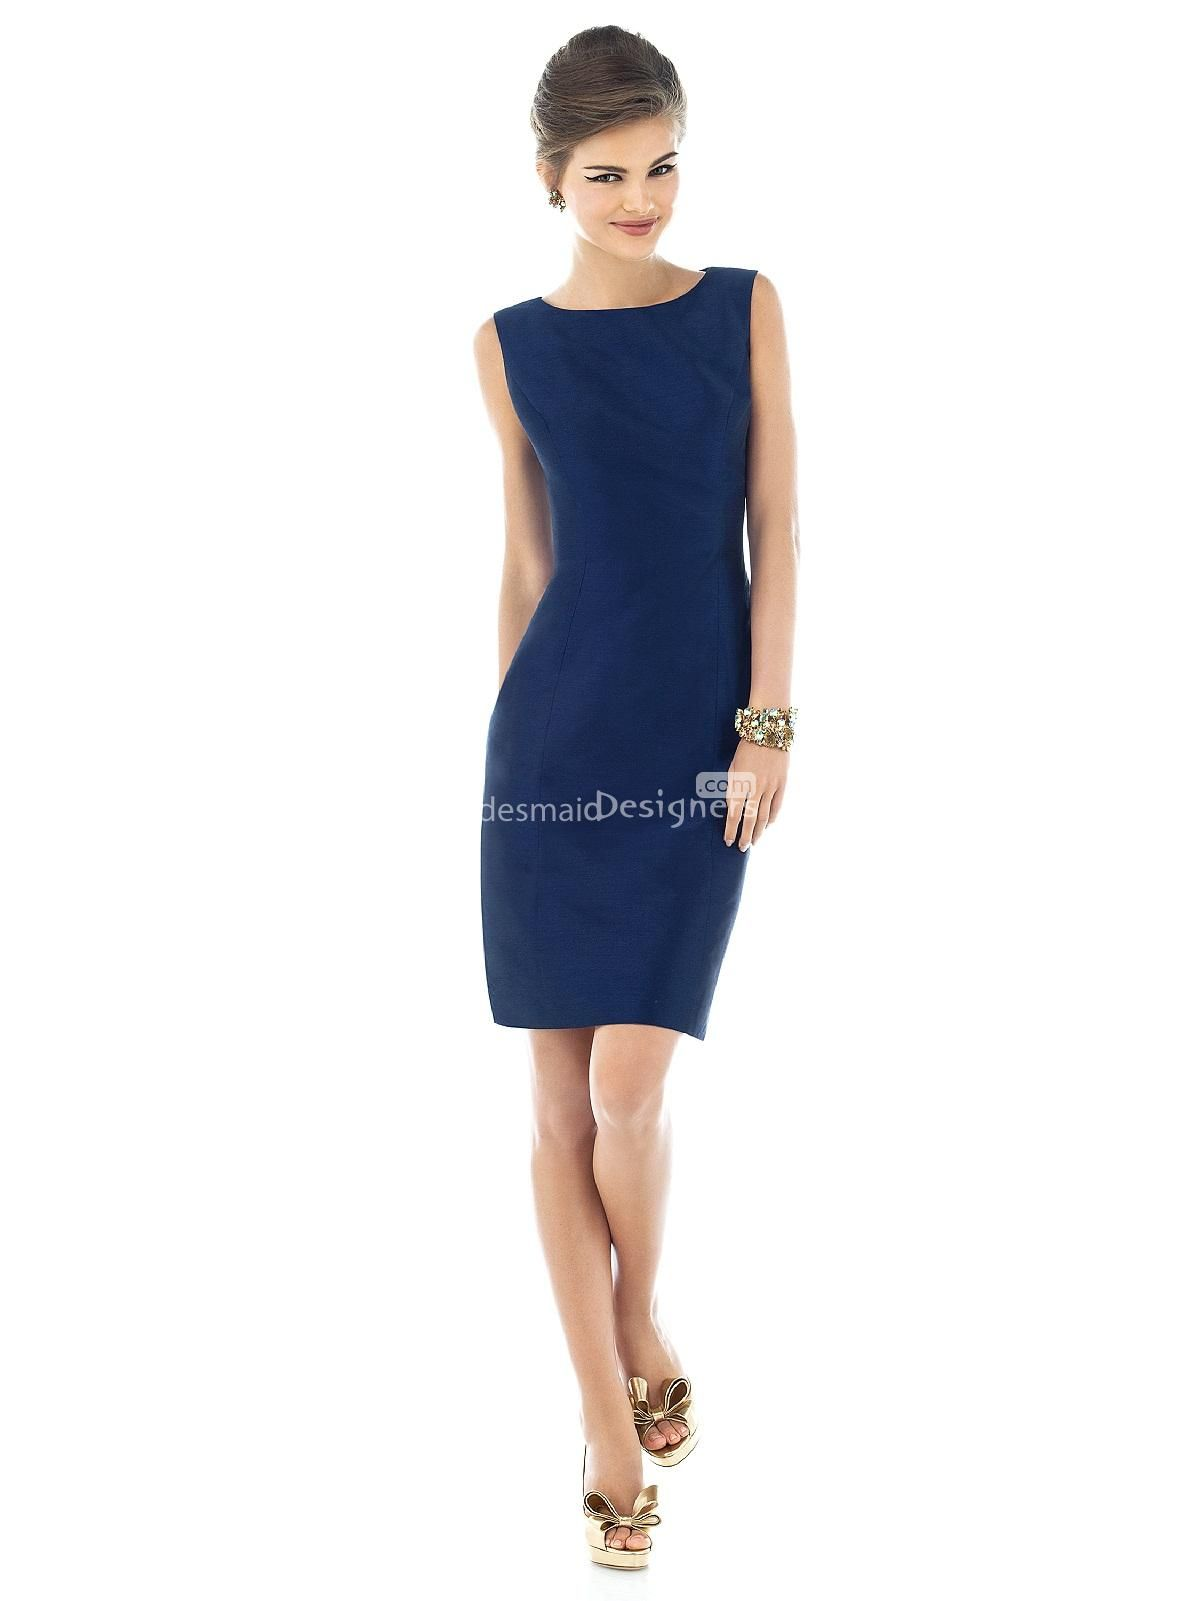 Different dark blue sleeveless boat neck cocktail length sheath